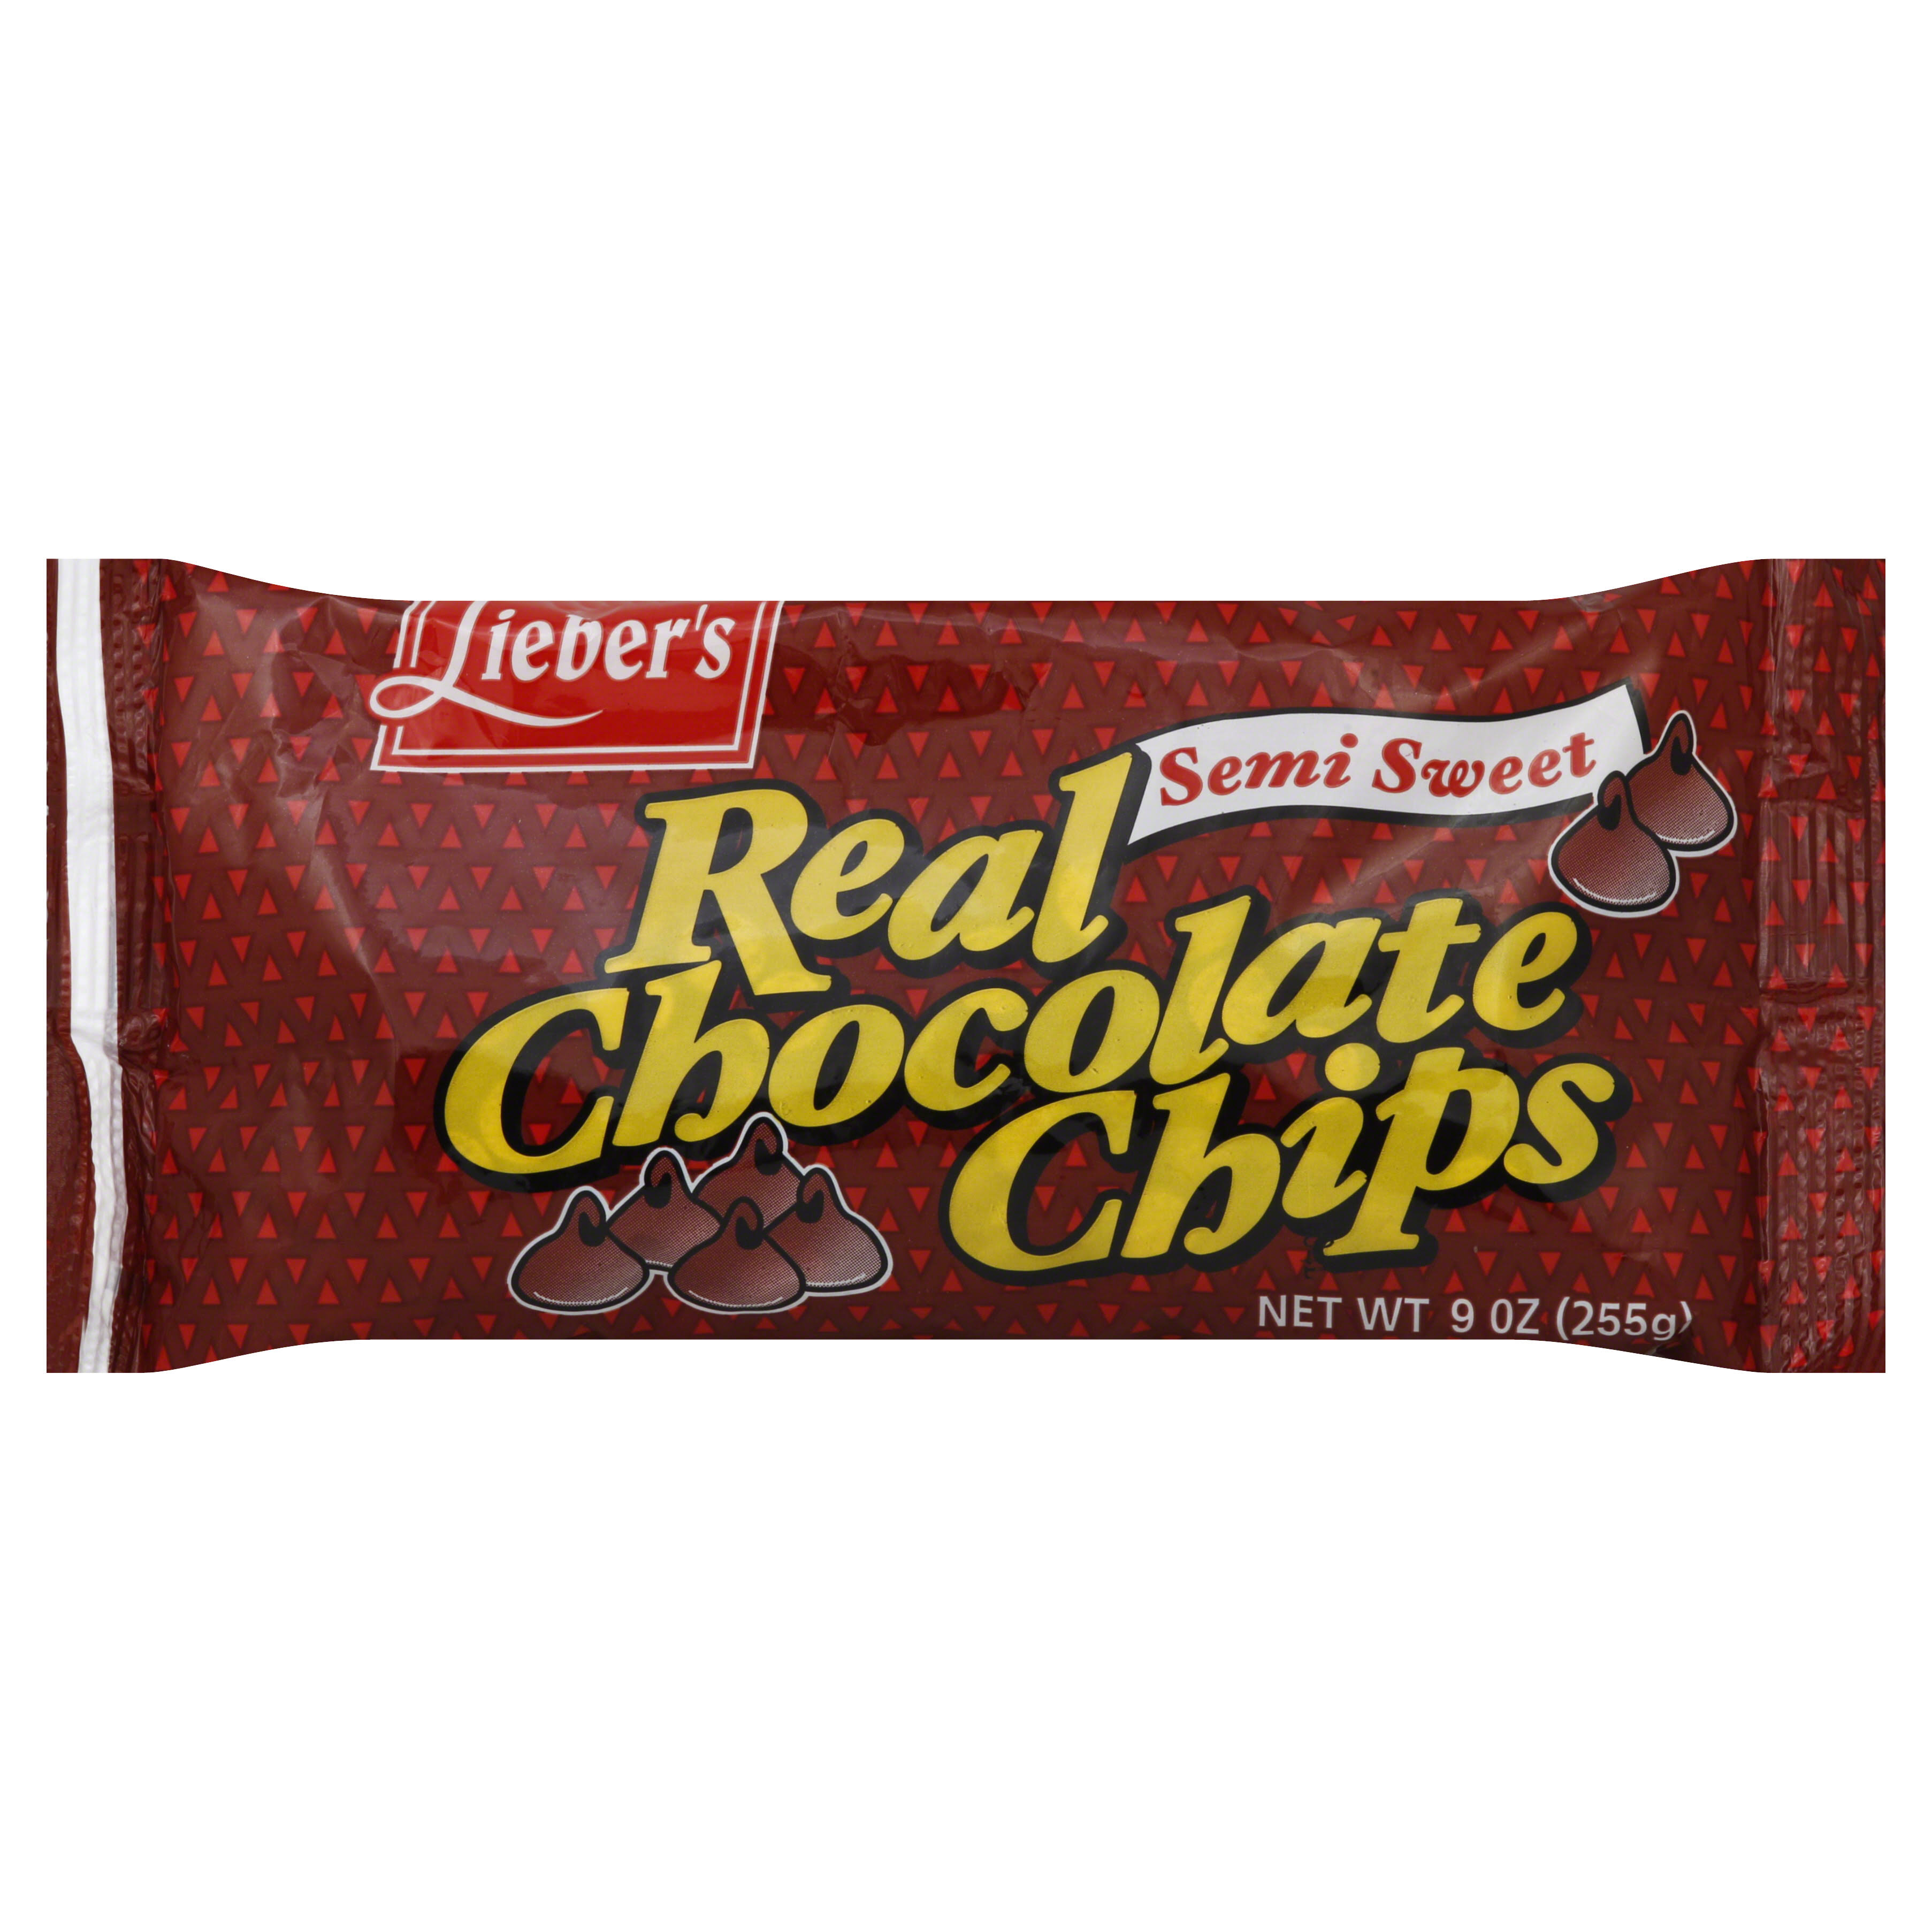 Liebers Chocolate Chips, Semi Sweet - 9 oz